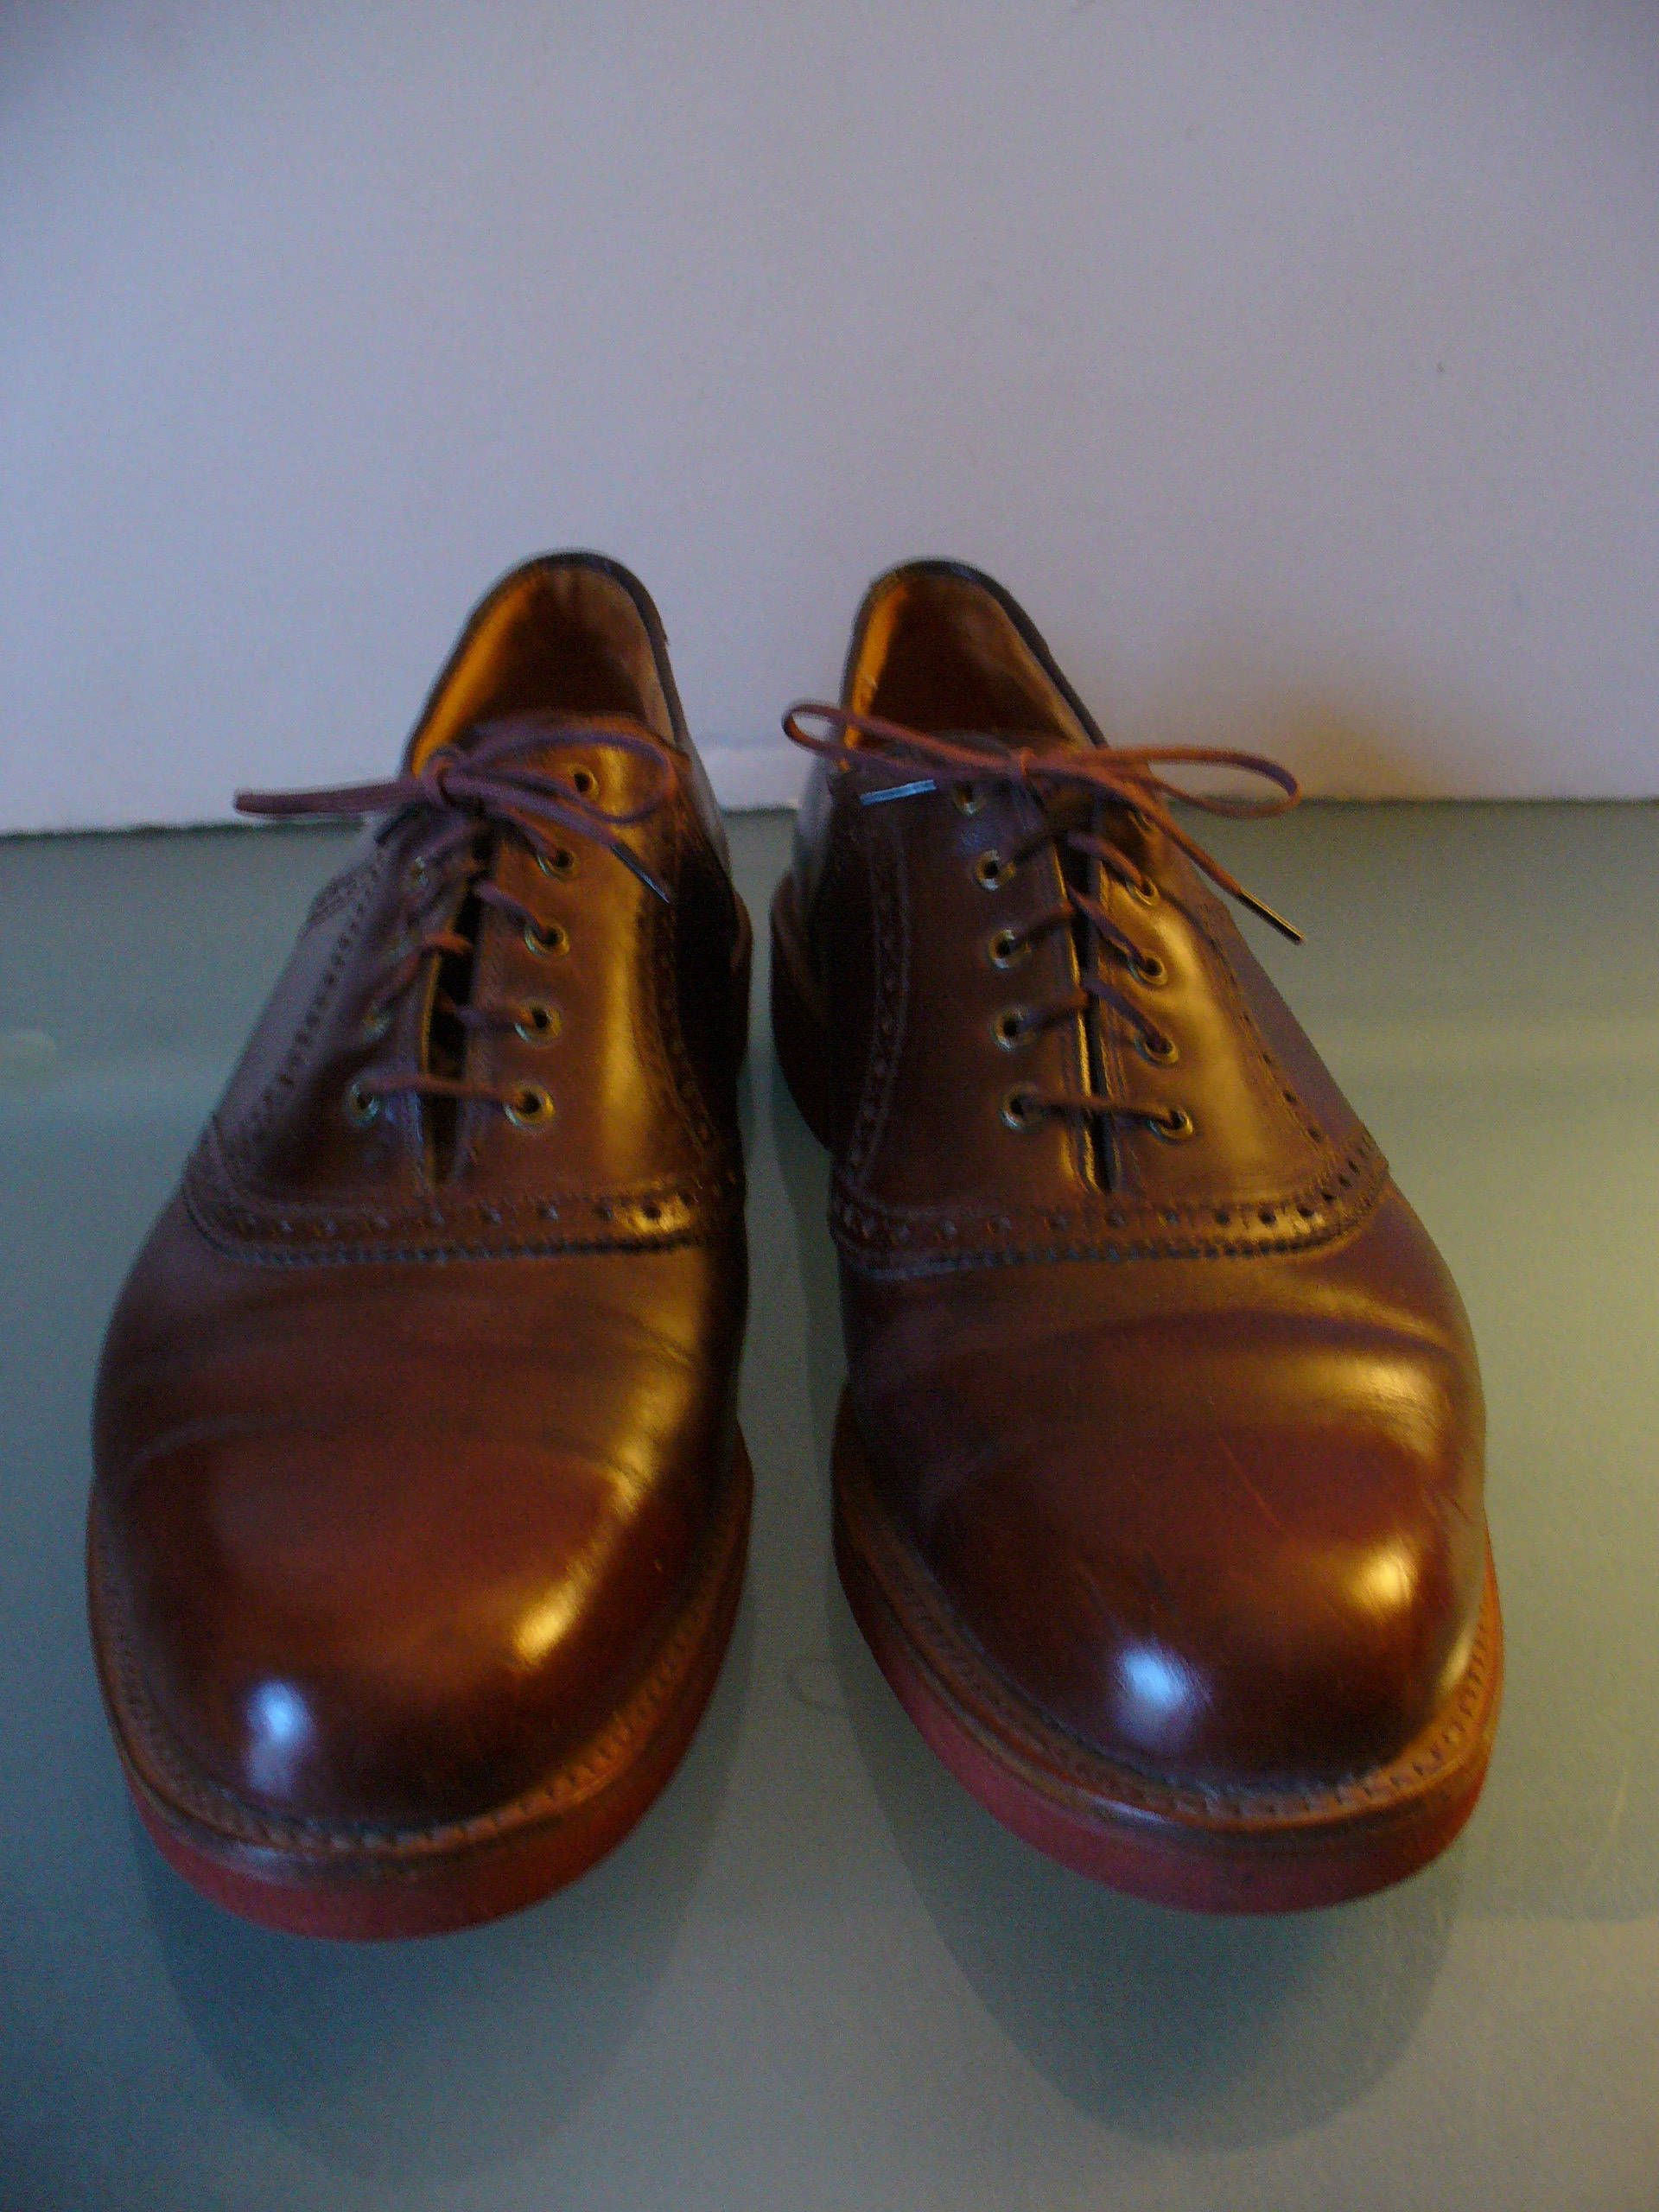 Walk-Over Men's  Loafers Sz 12